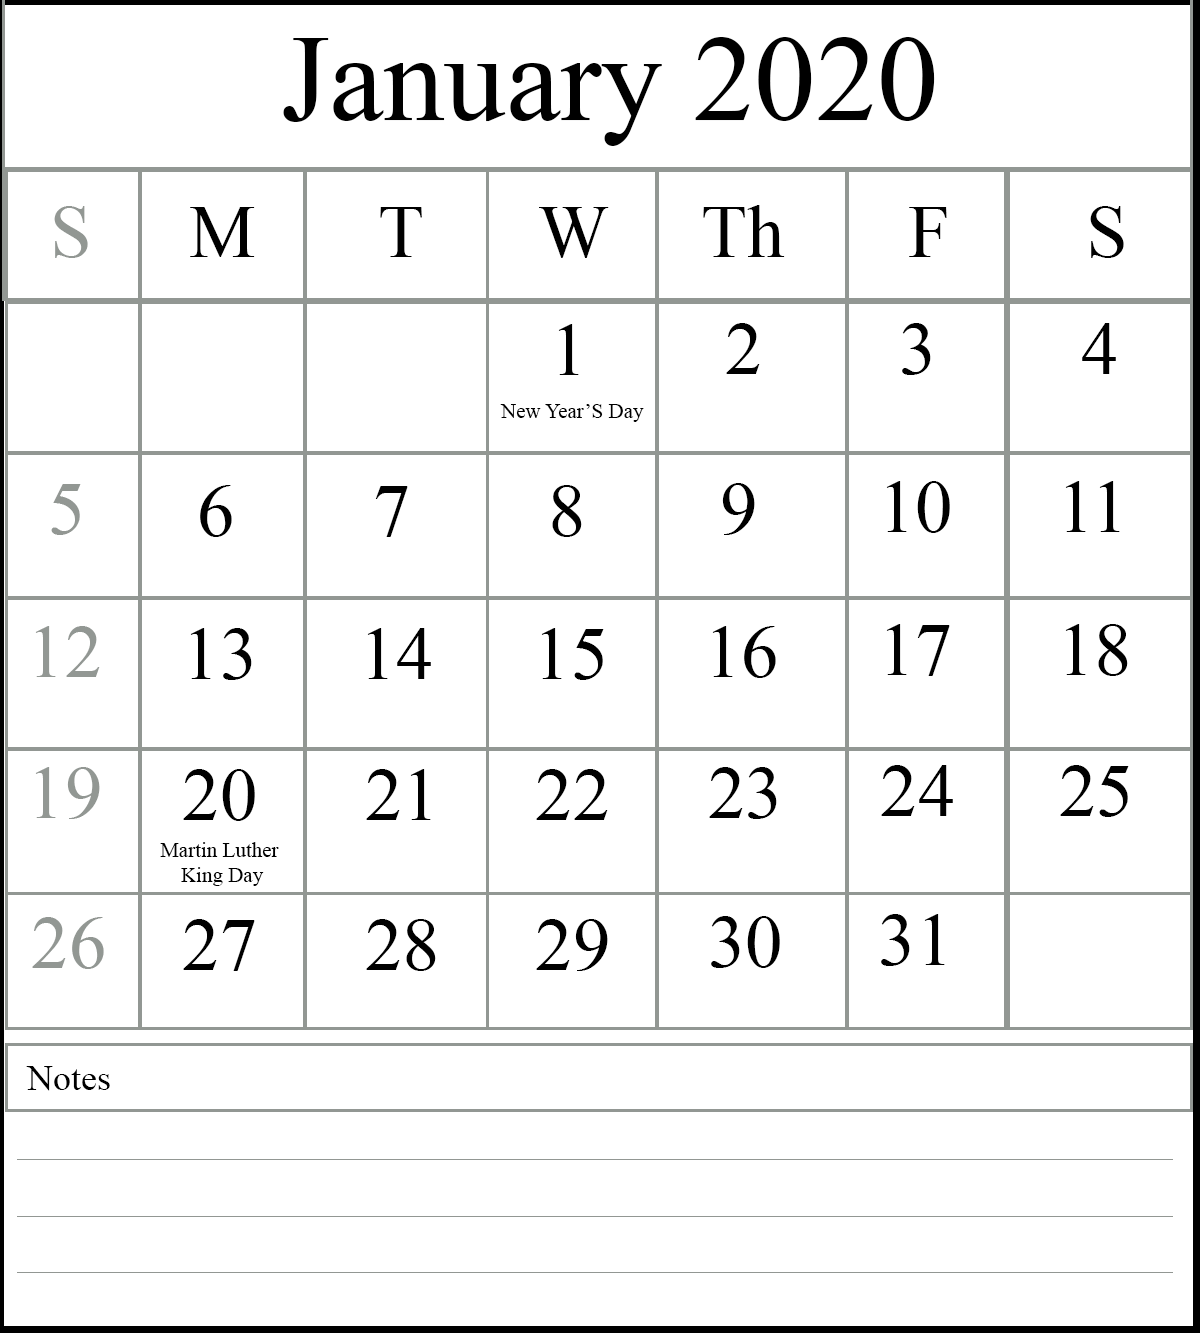 January 2020 Printable Calendar With Office Holidays